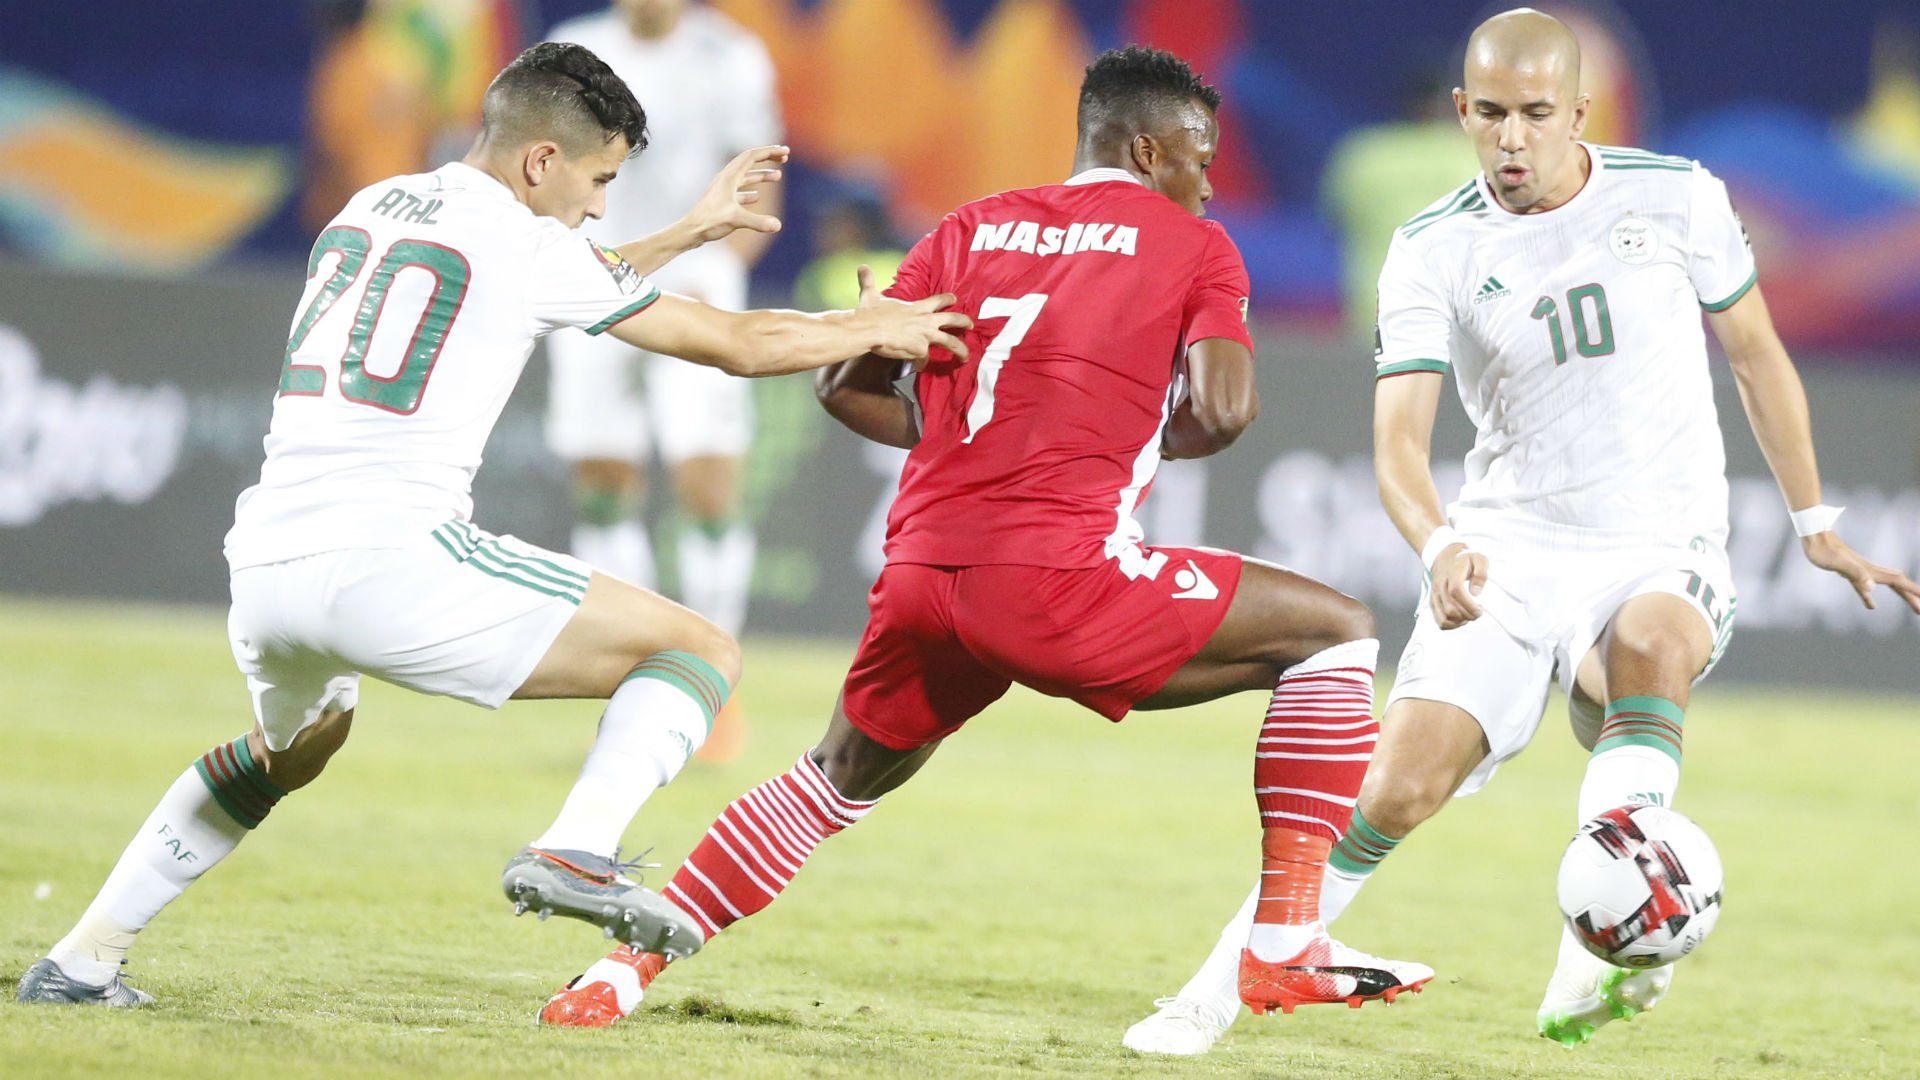 Afcon 2021 Qualifiers: Reprieve as Harambee Stars survive eviction in Egypt